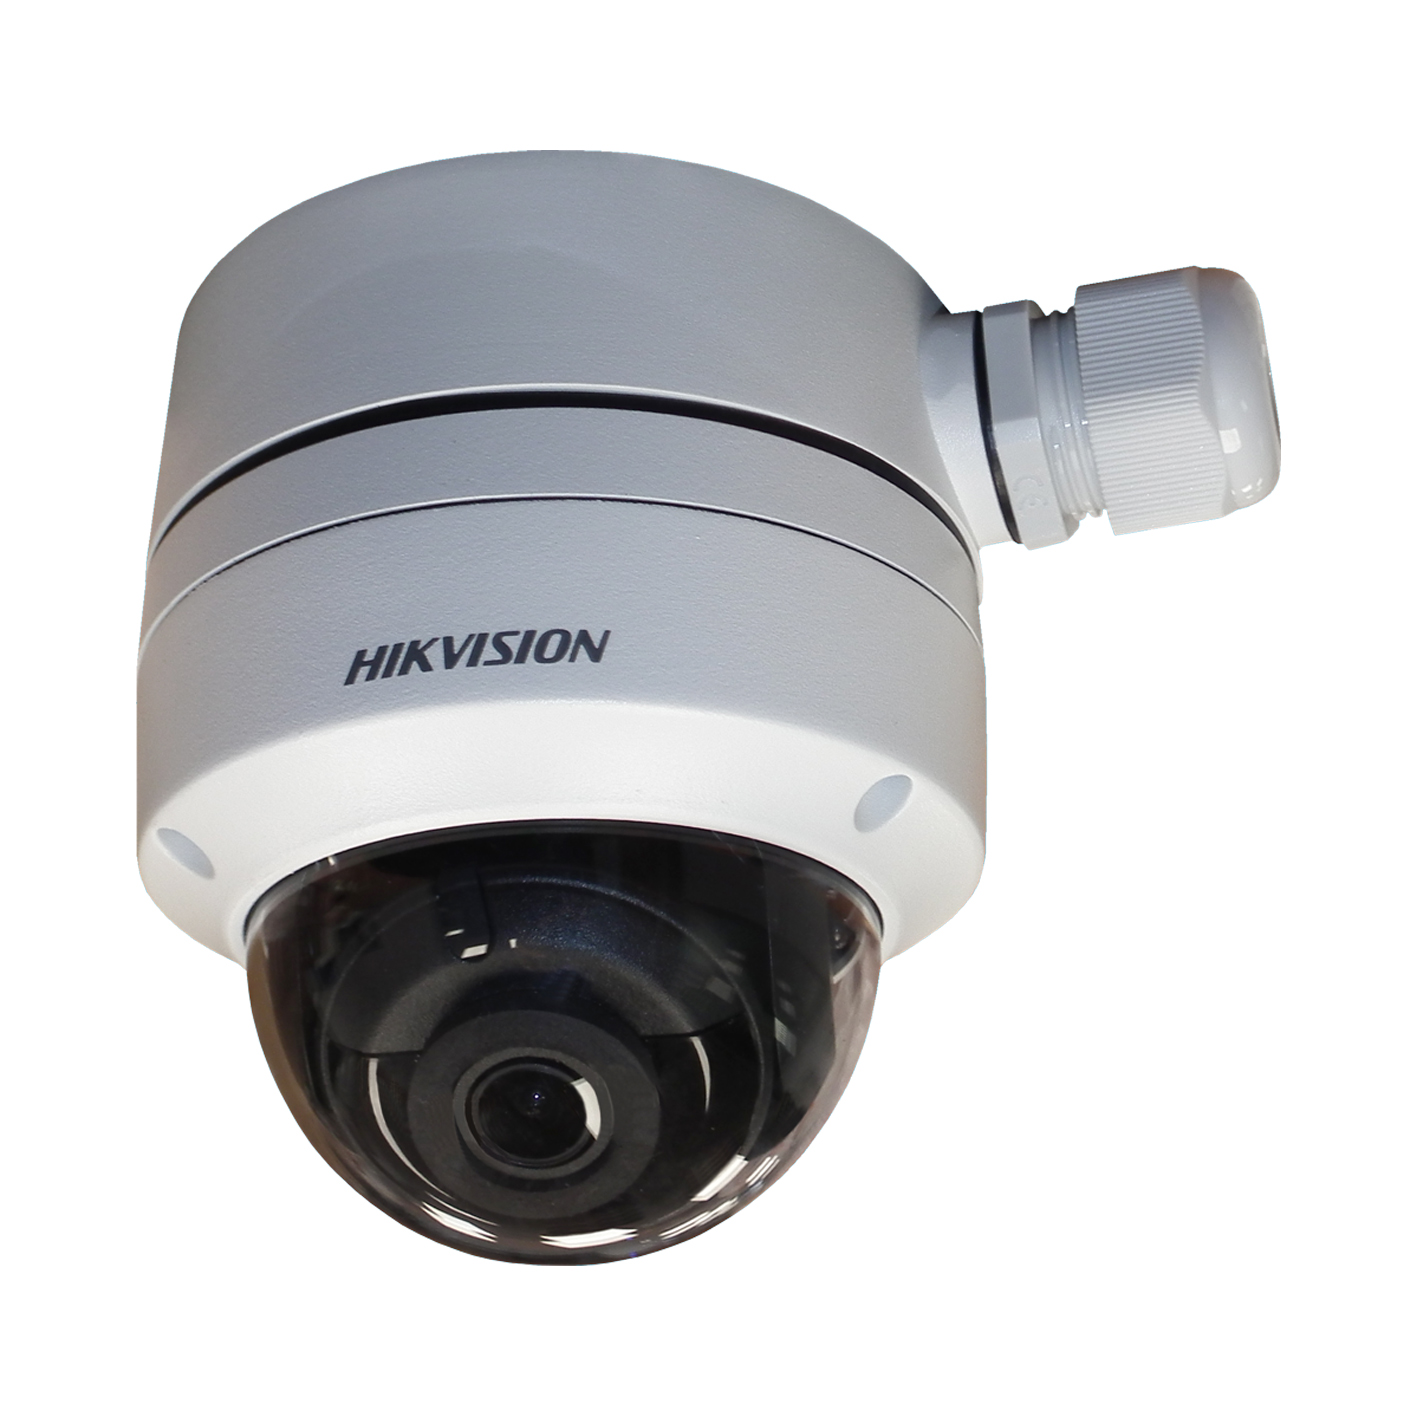 Hikvision 5 Megapixel CCTV Home Security Cameras in UK